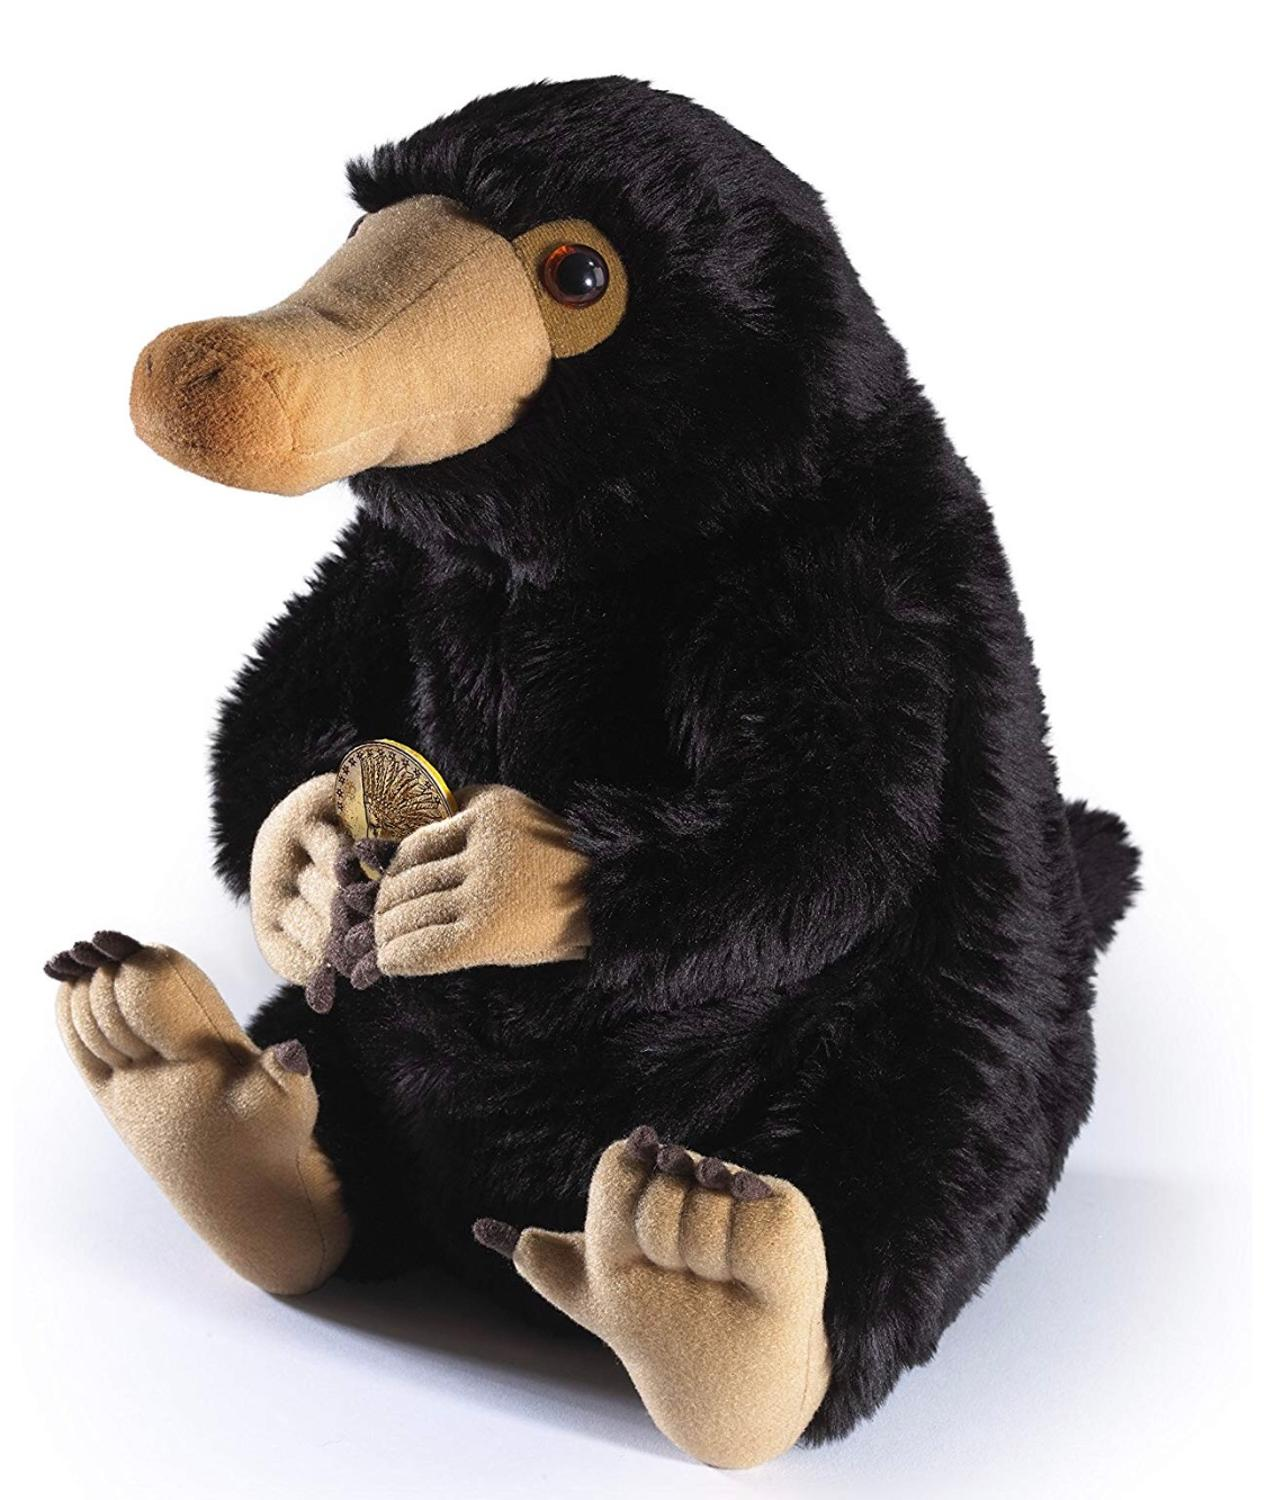 8'' 20 Cm Where To Find Them Niffler Fantastic Beasts Plush Toy Fluffy Black Duckbills Cute Soft Stuffed Animals For Kids Gift